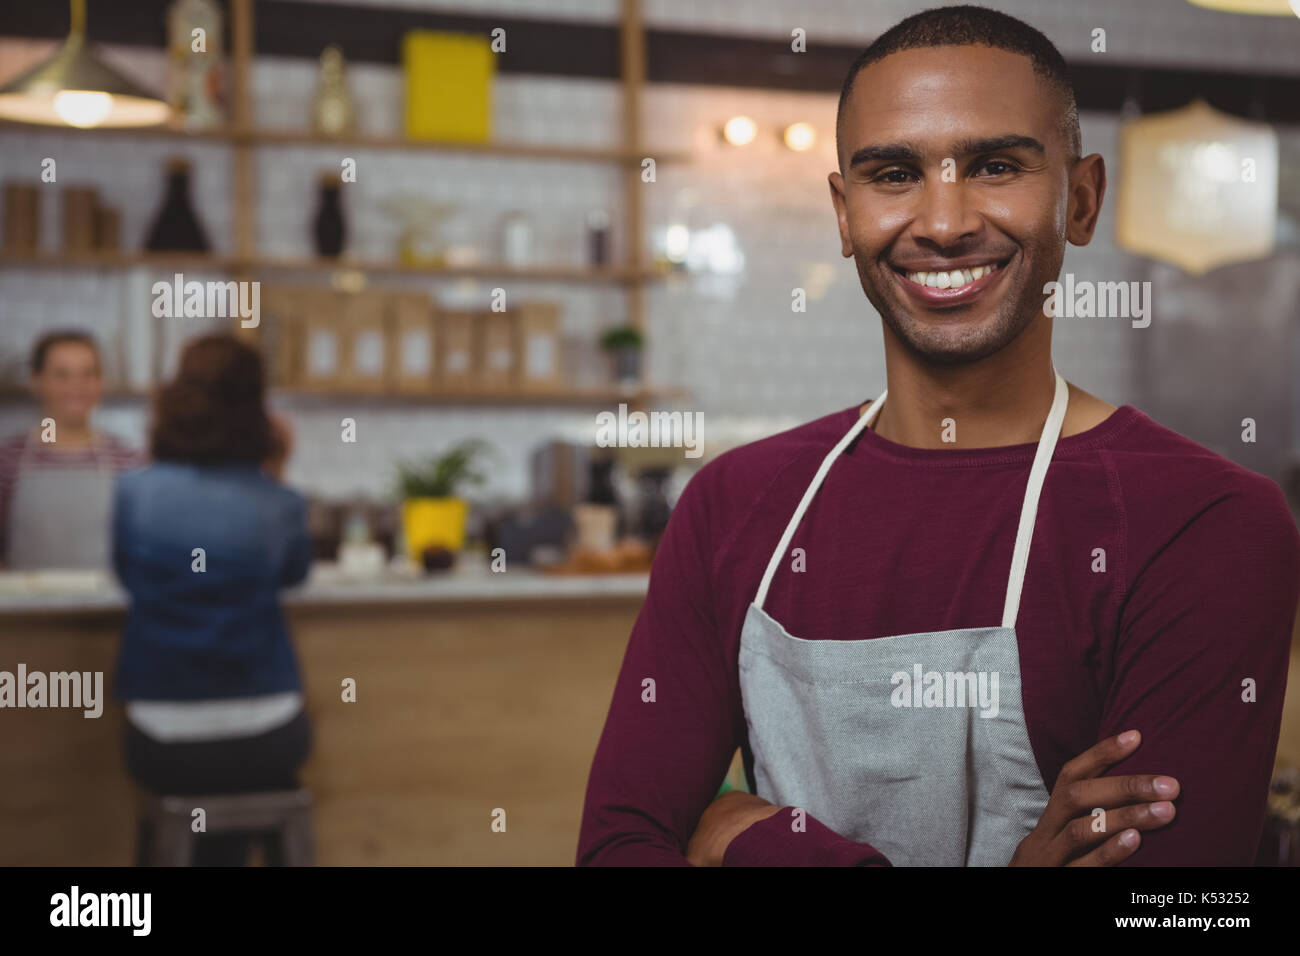 Portrait of smiling in cafe Photo Stock